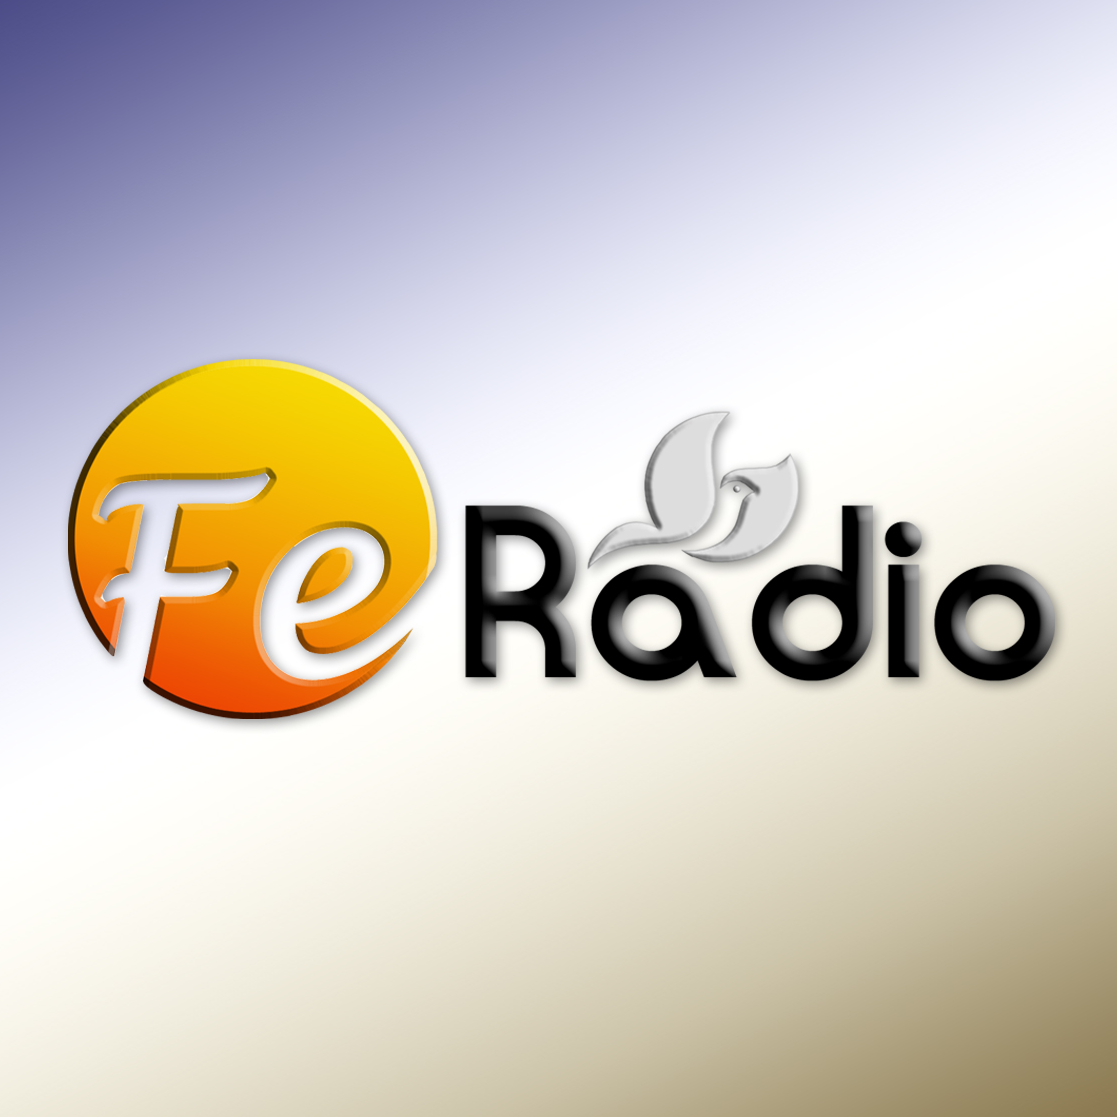 Fe Radio Maryland